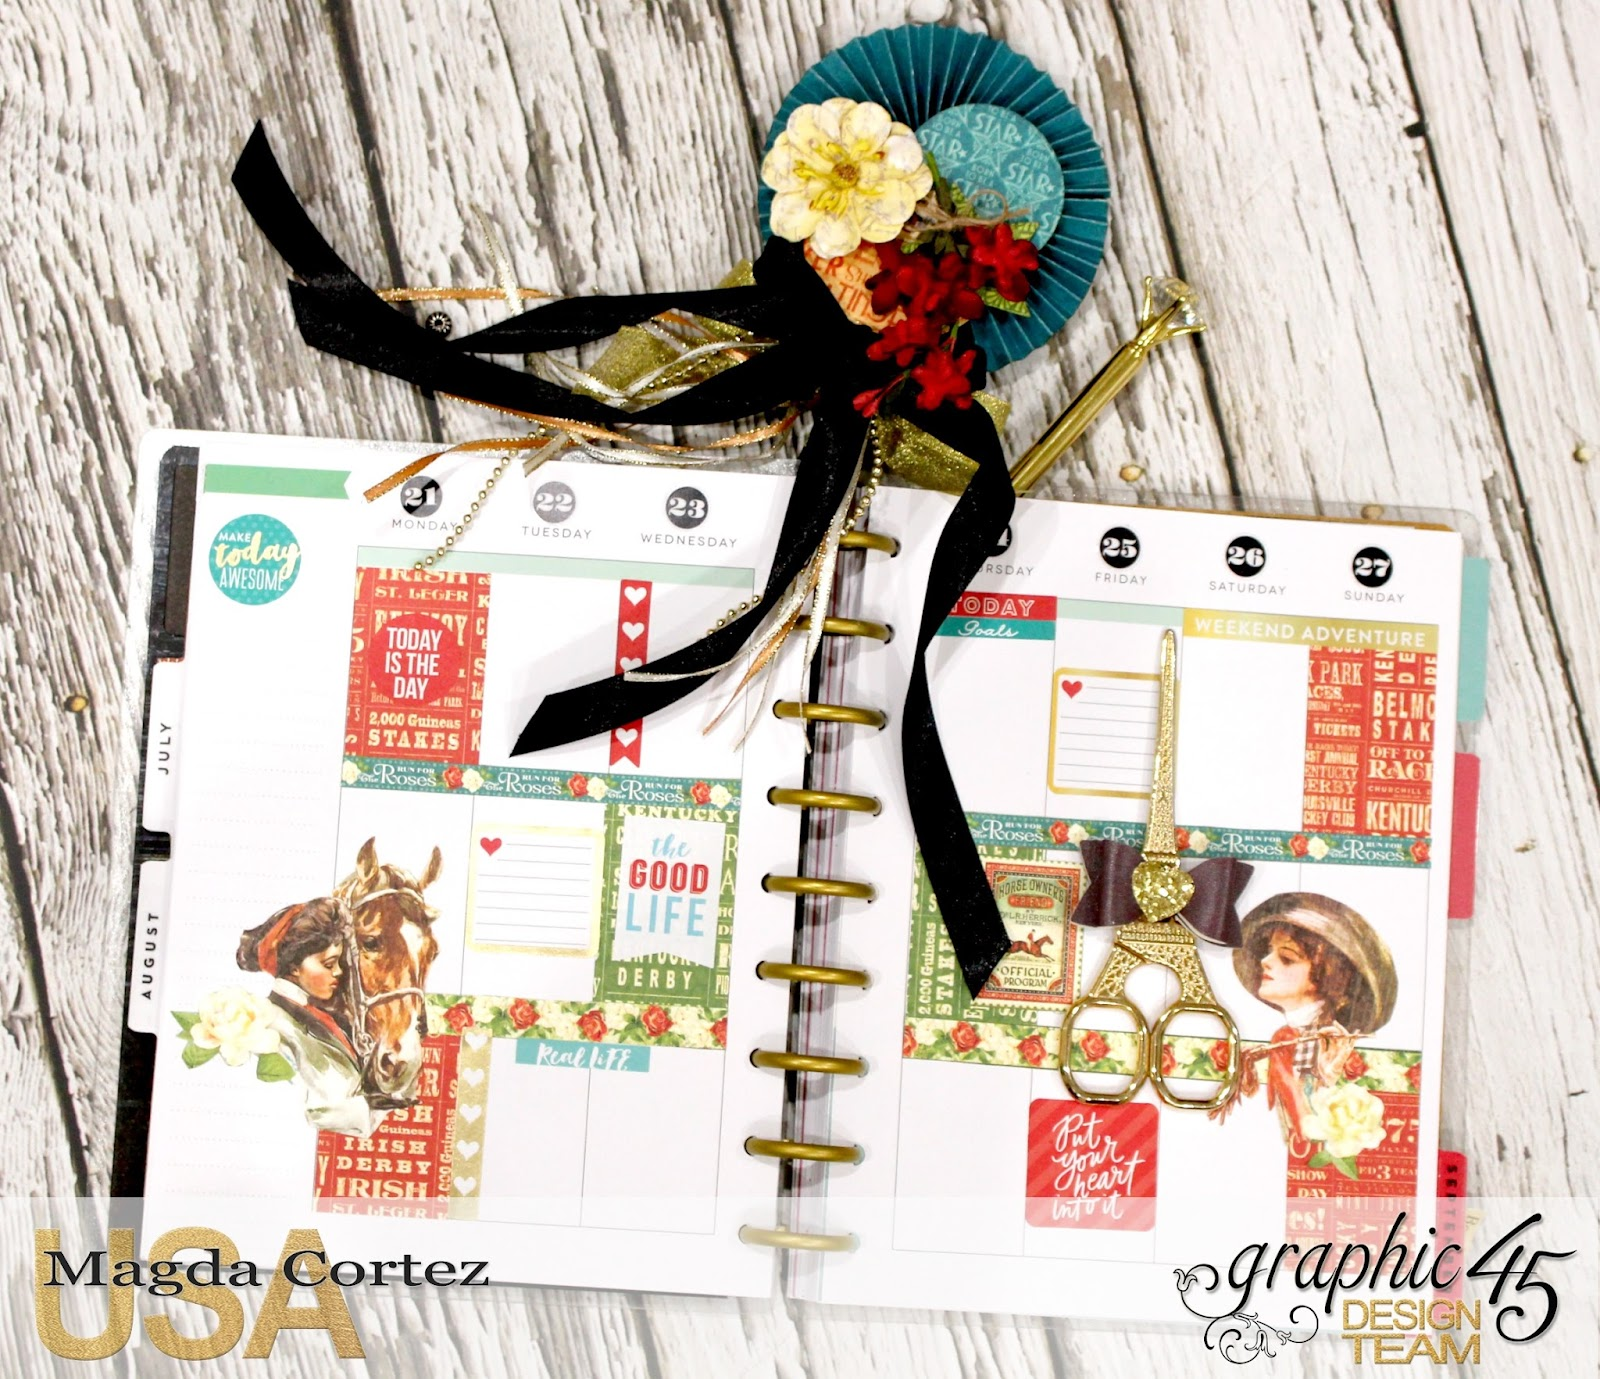 23. My G45 Planner August, Off To The Races By Magda Cortez, Product By Graphic 45, Photo 23 of 26.jpg